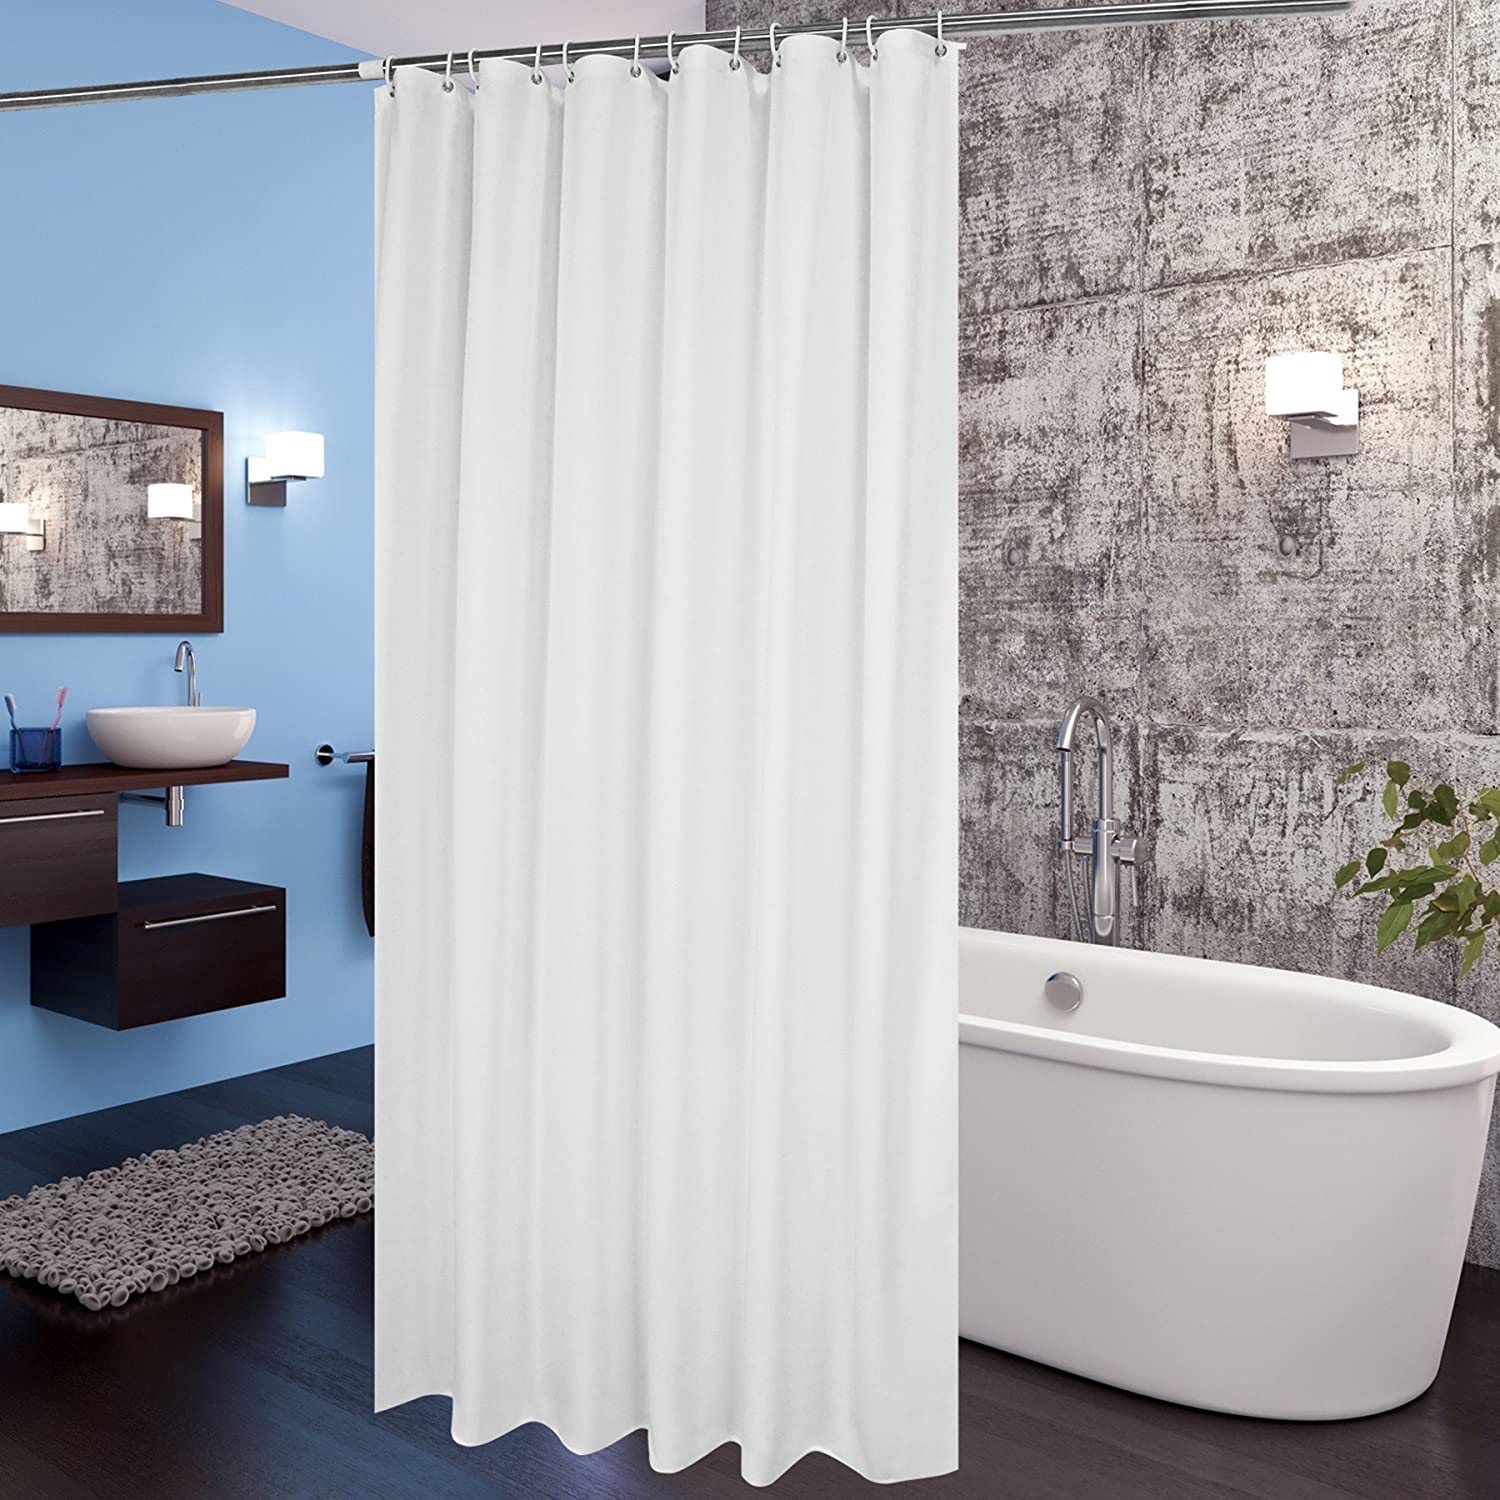 Amazon.com: Aoohome Fabric Shower Curtain 72x78 Inch, Extra Long ...